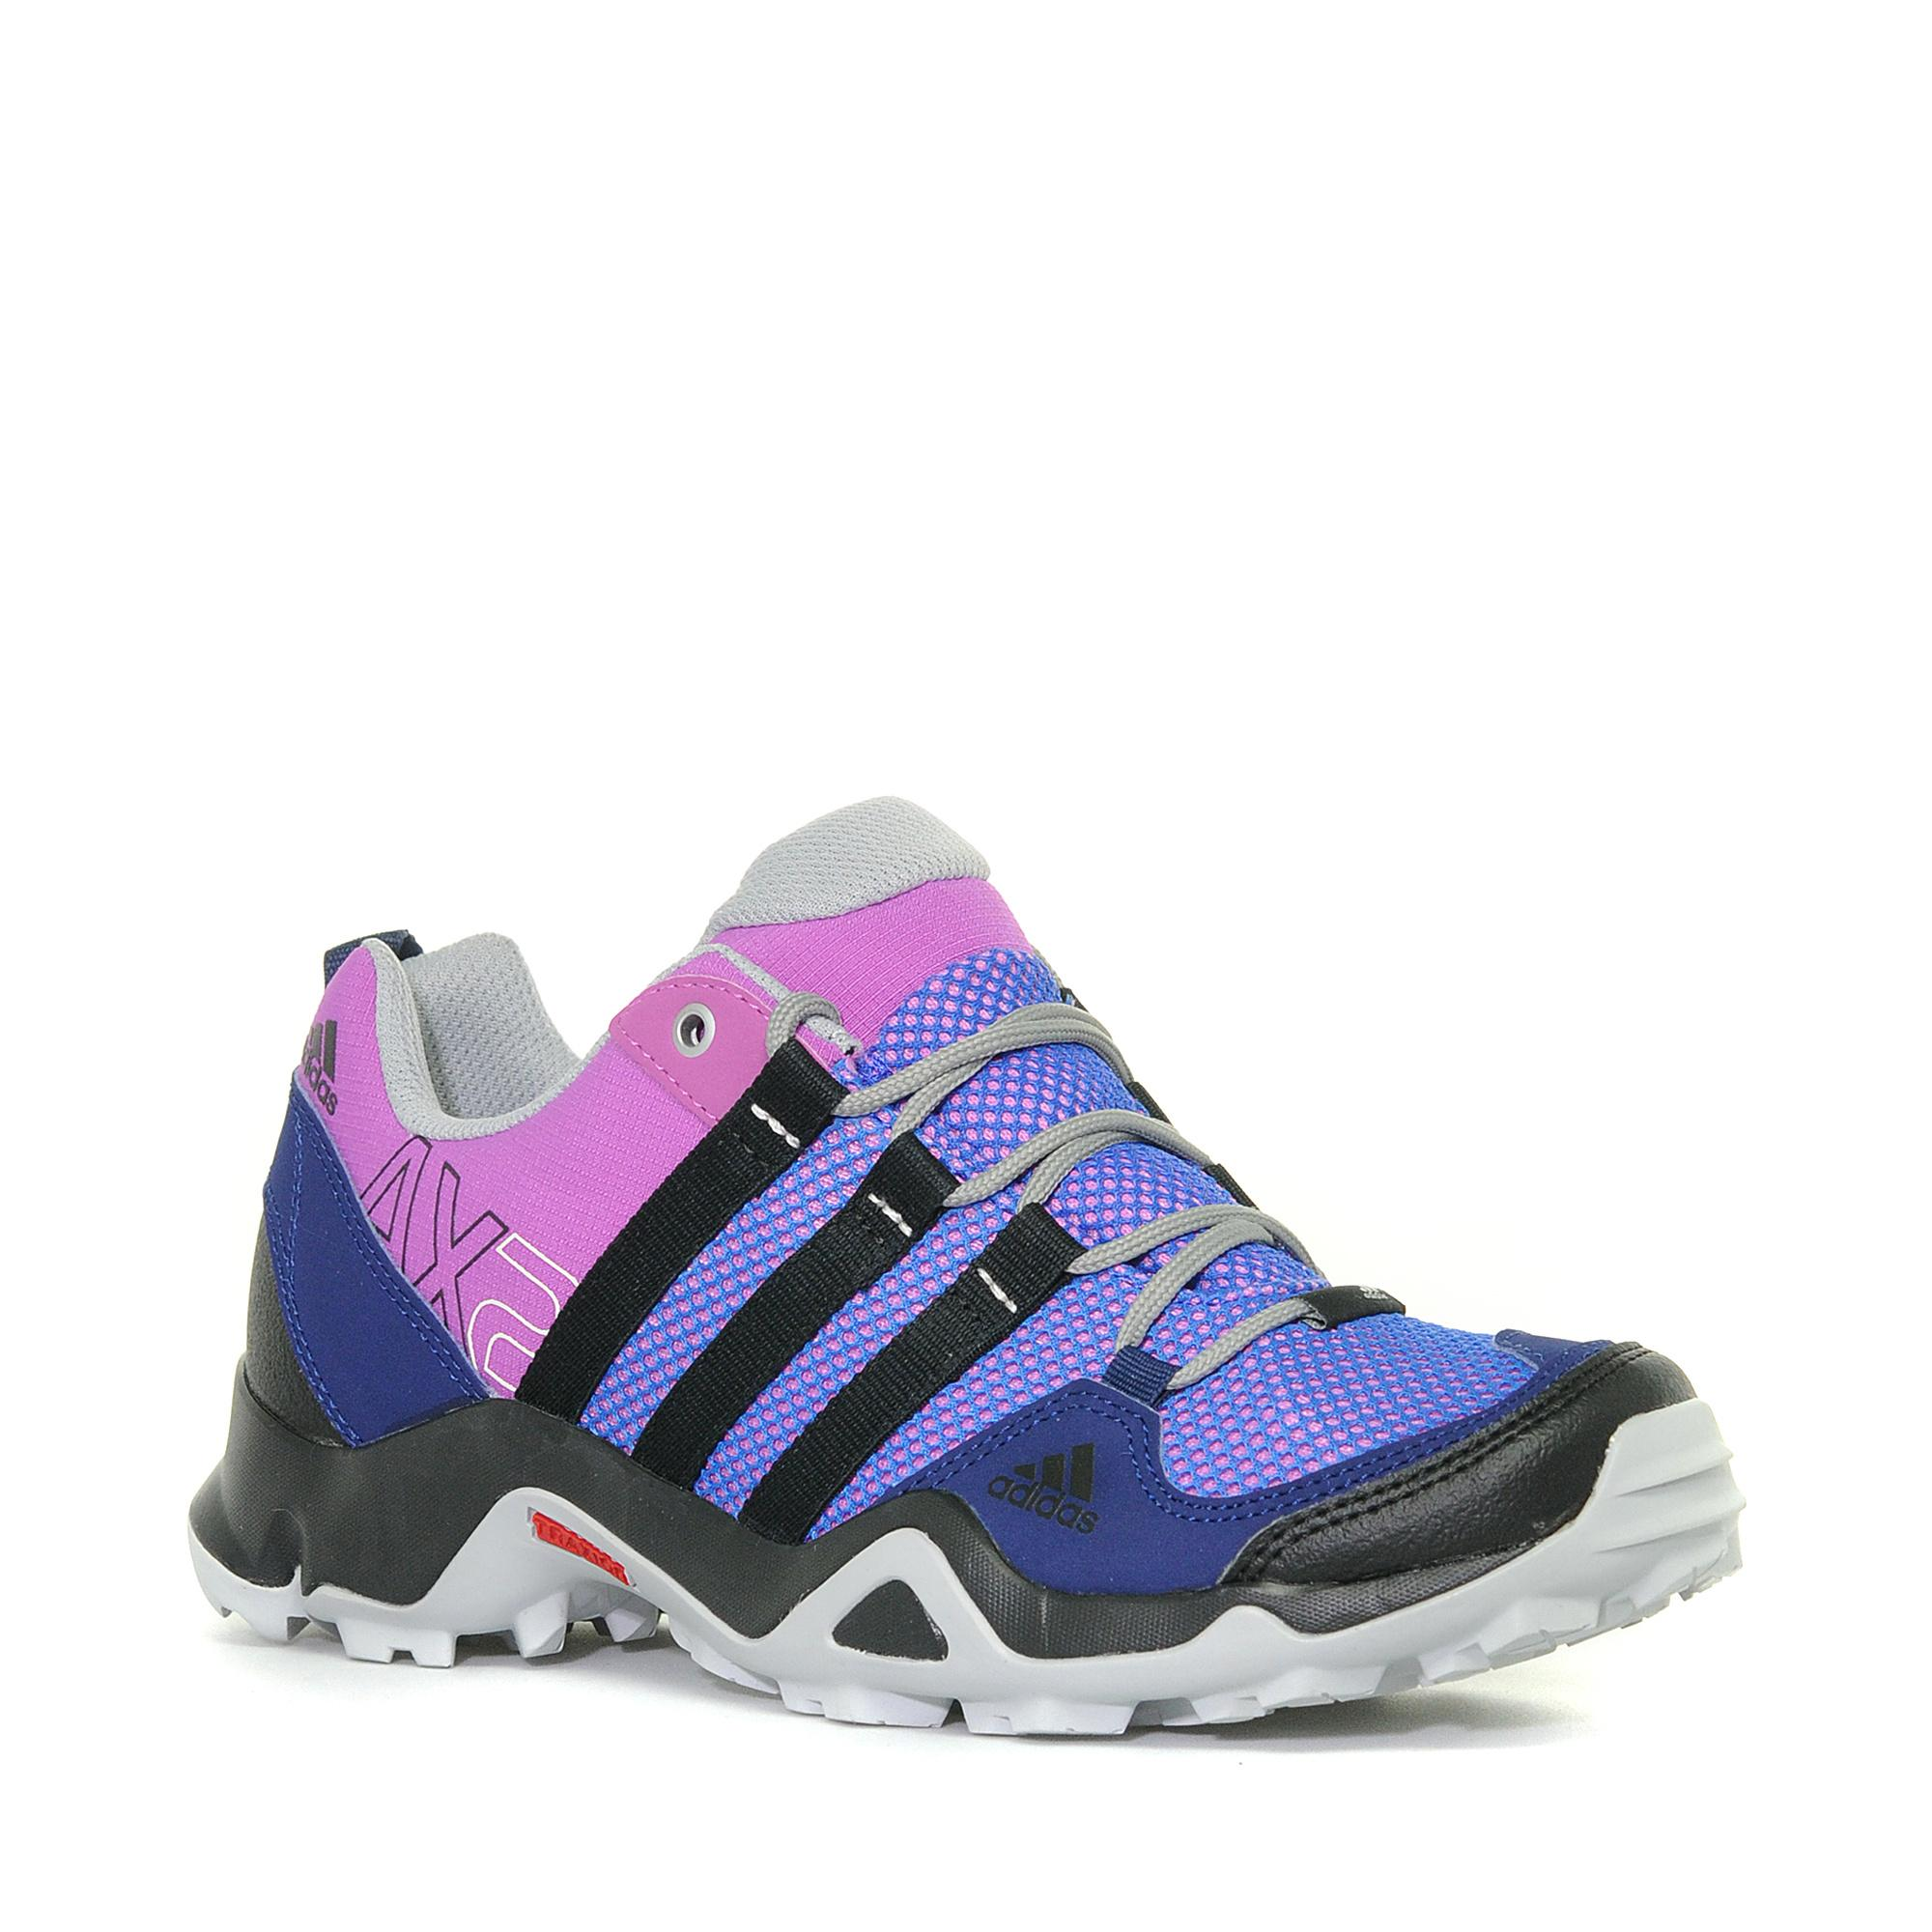 Adidas Womens AX2 Approach Shoe Mid Pink